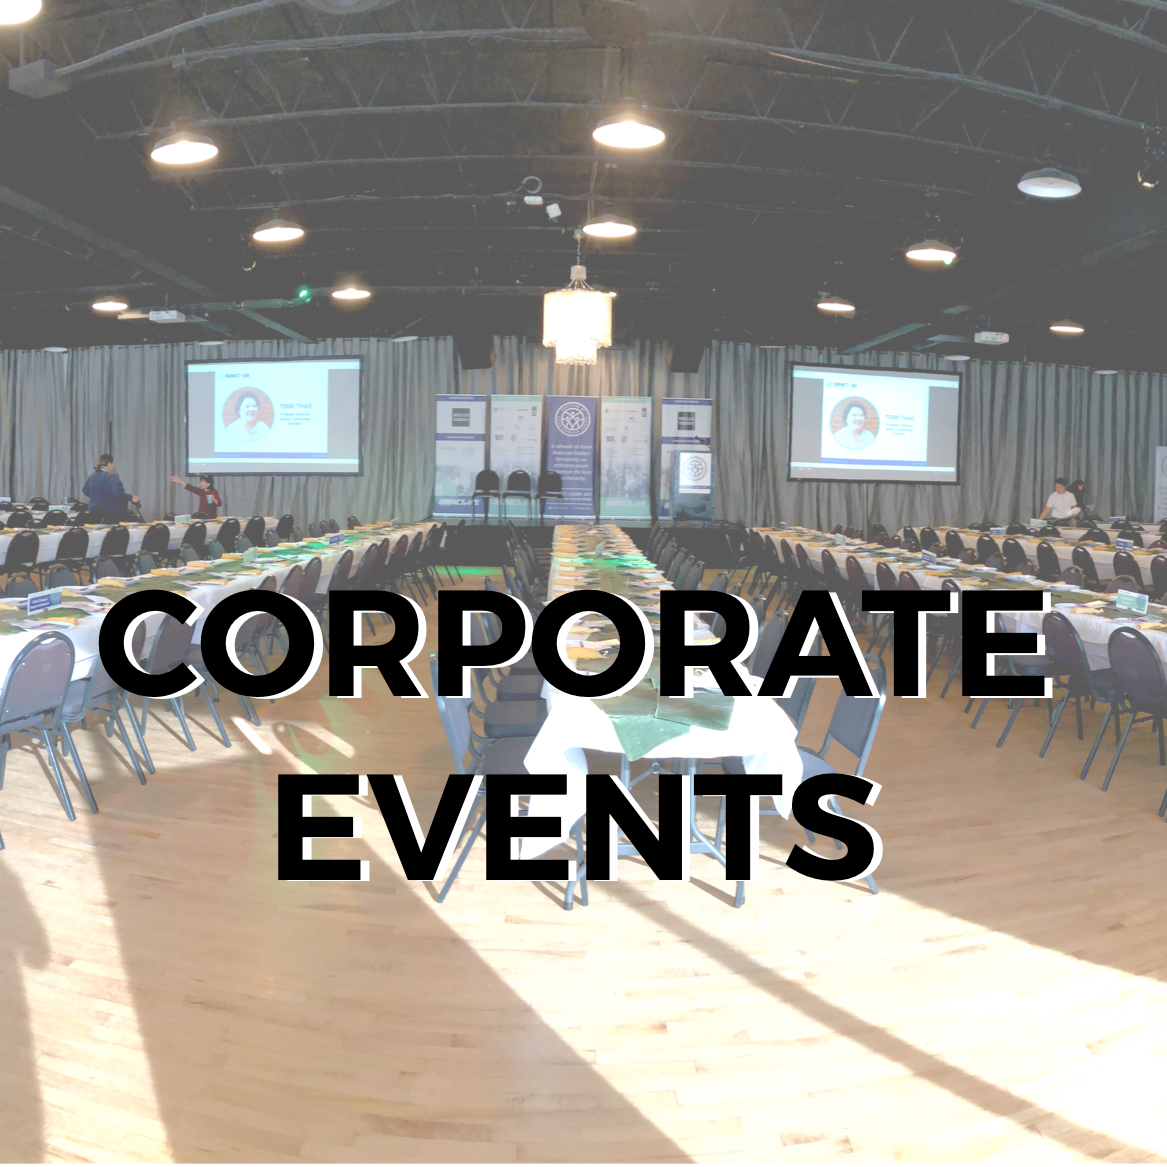 With a central Twin Cities venue location and plenty of free parking, the venue has many flexible policies and layout that are conveniently customizable for corporate meetings, banquets, trainings, annual meetings and much more   SEE MORE DETAILS >>